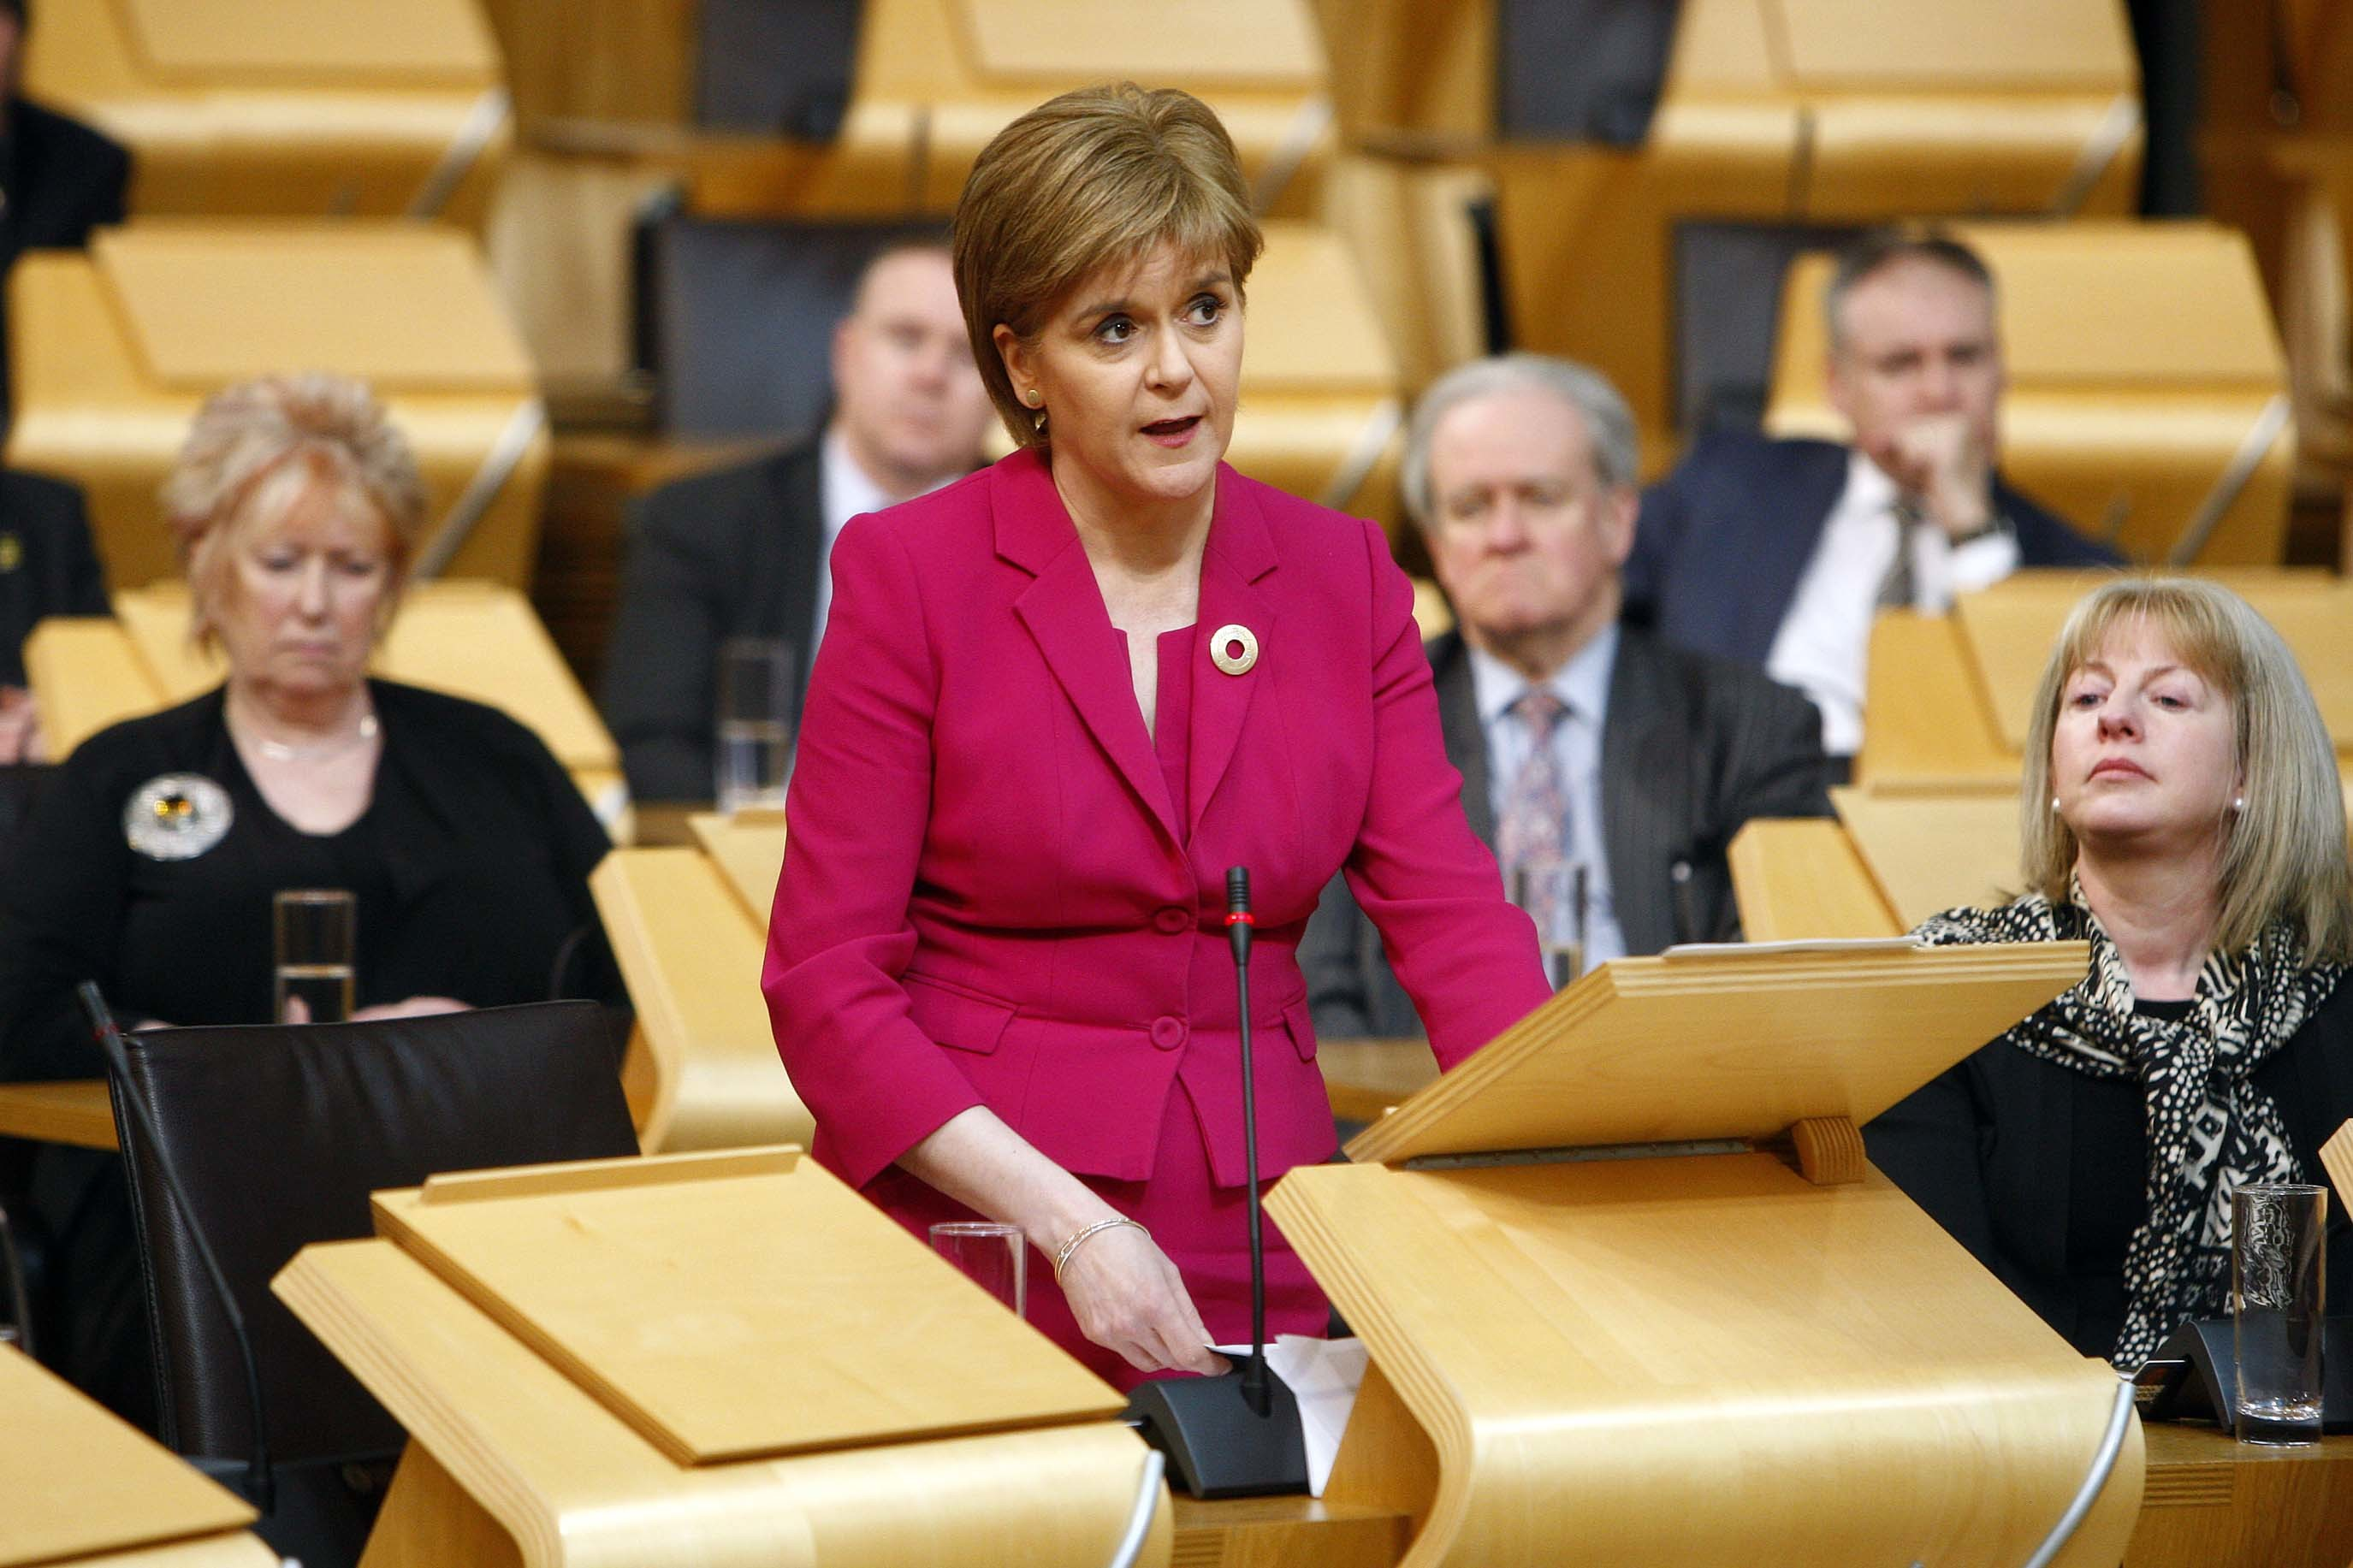 Nicola Sturgeon (Andrew Cowan/Scottish Parliament)